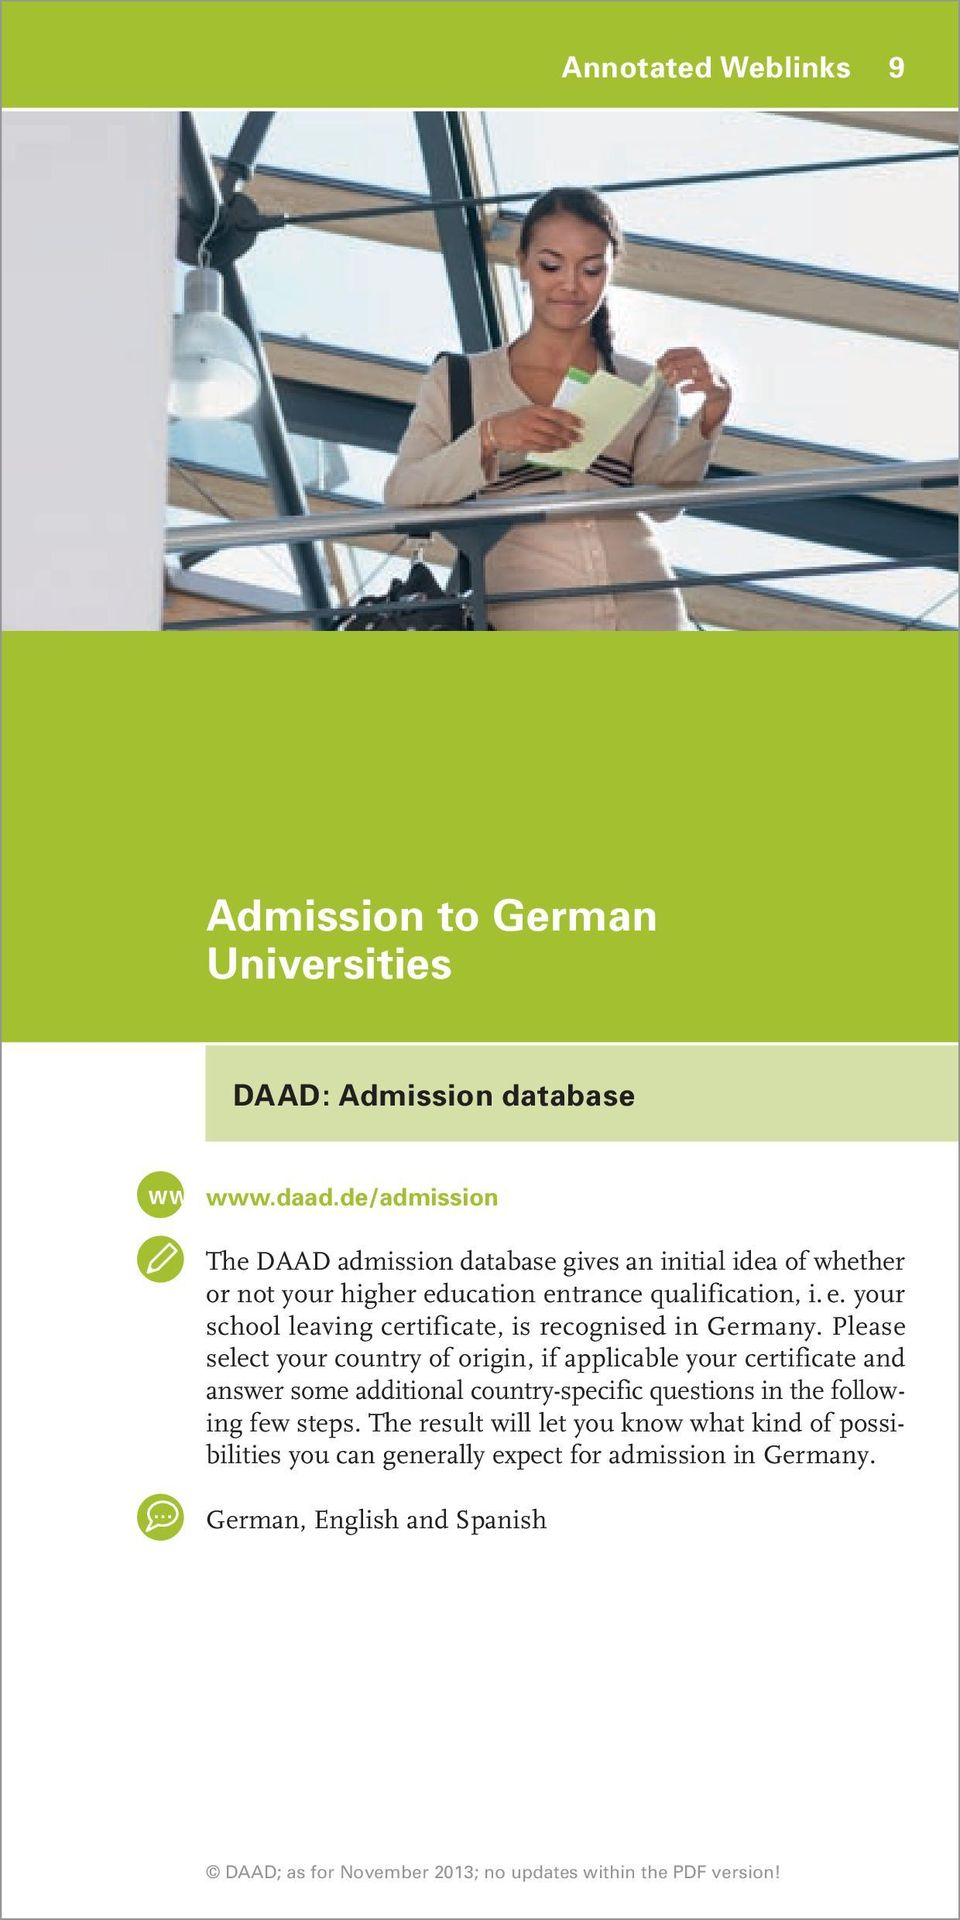 ucation entrance qualification, i. e. your school leaving certificate, is recognised in Germany.